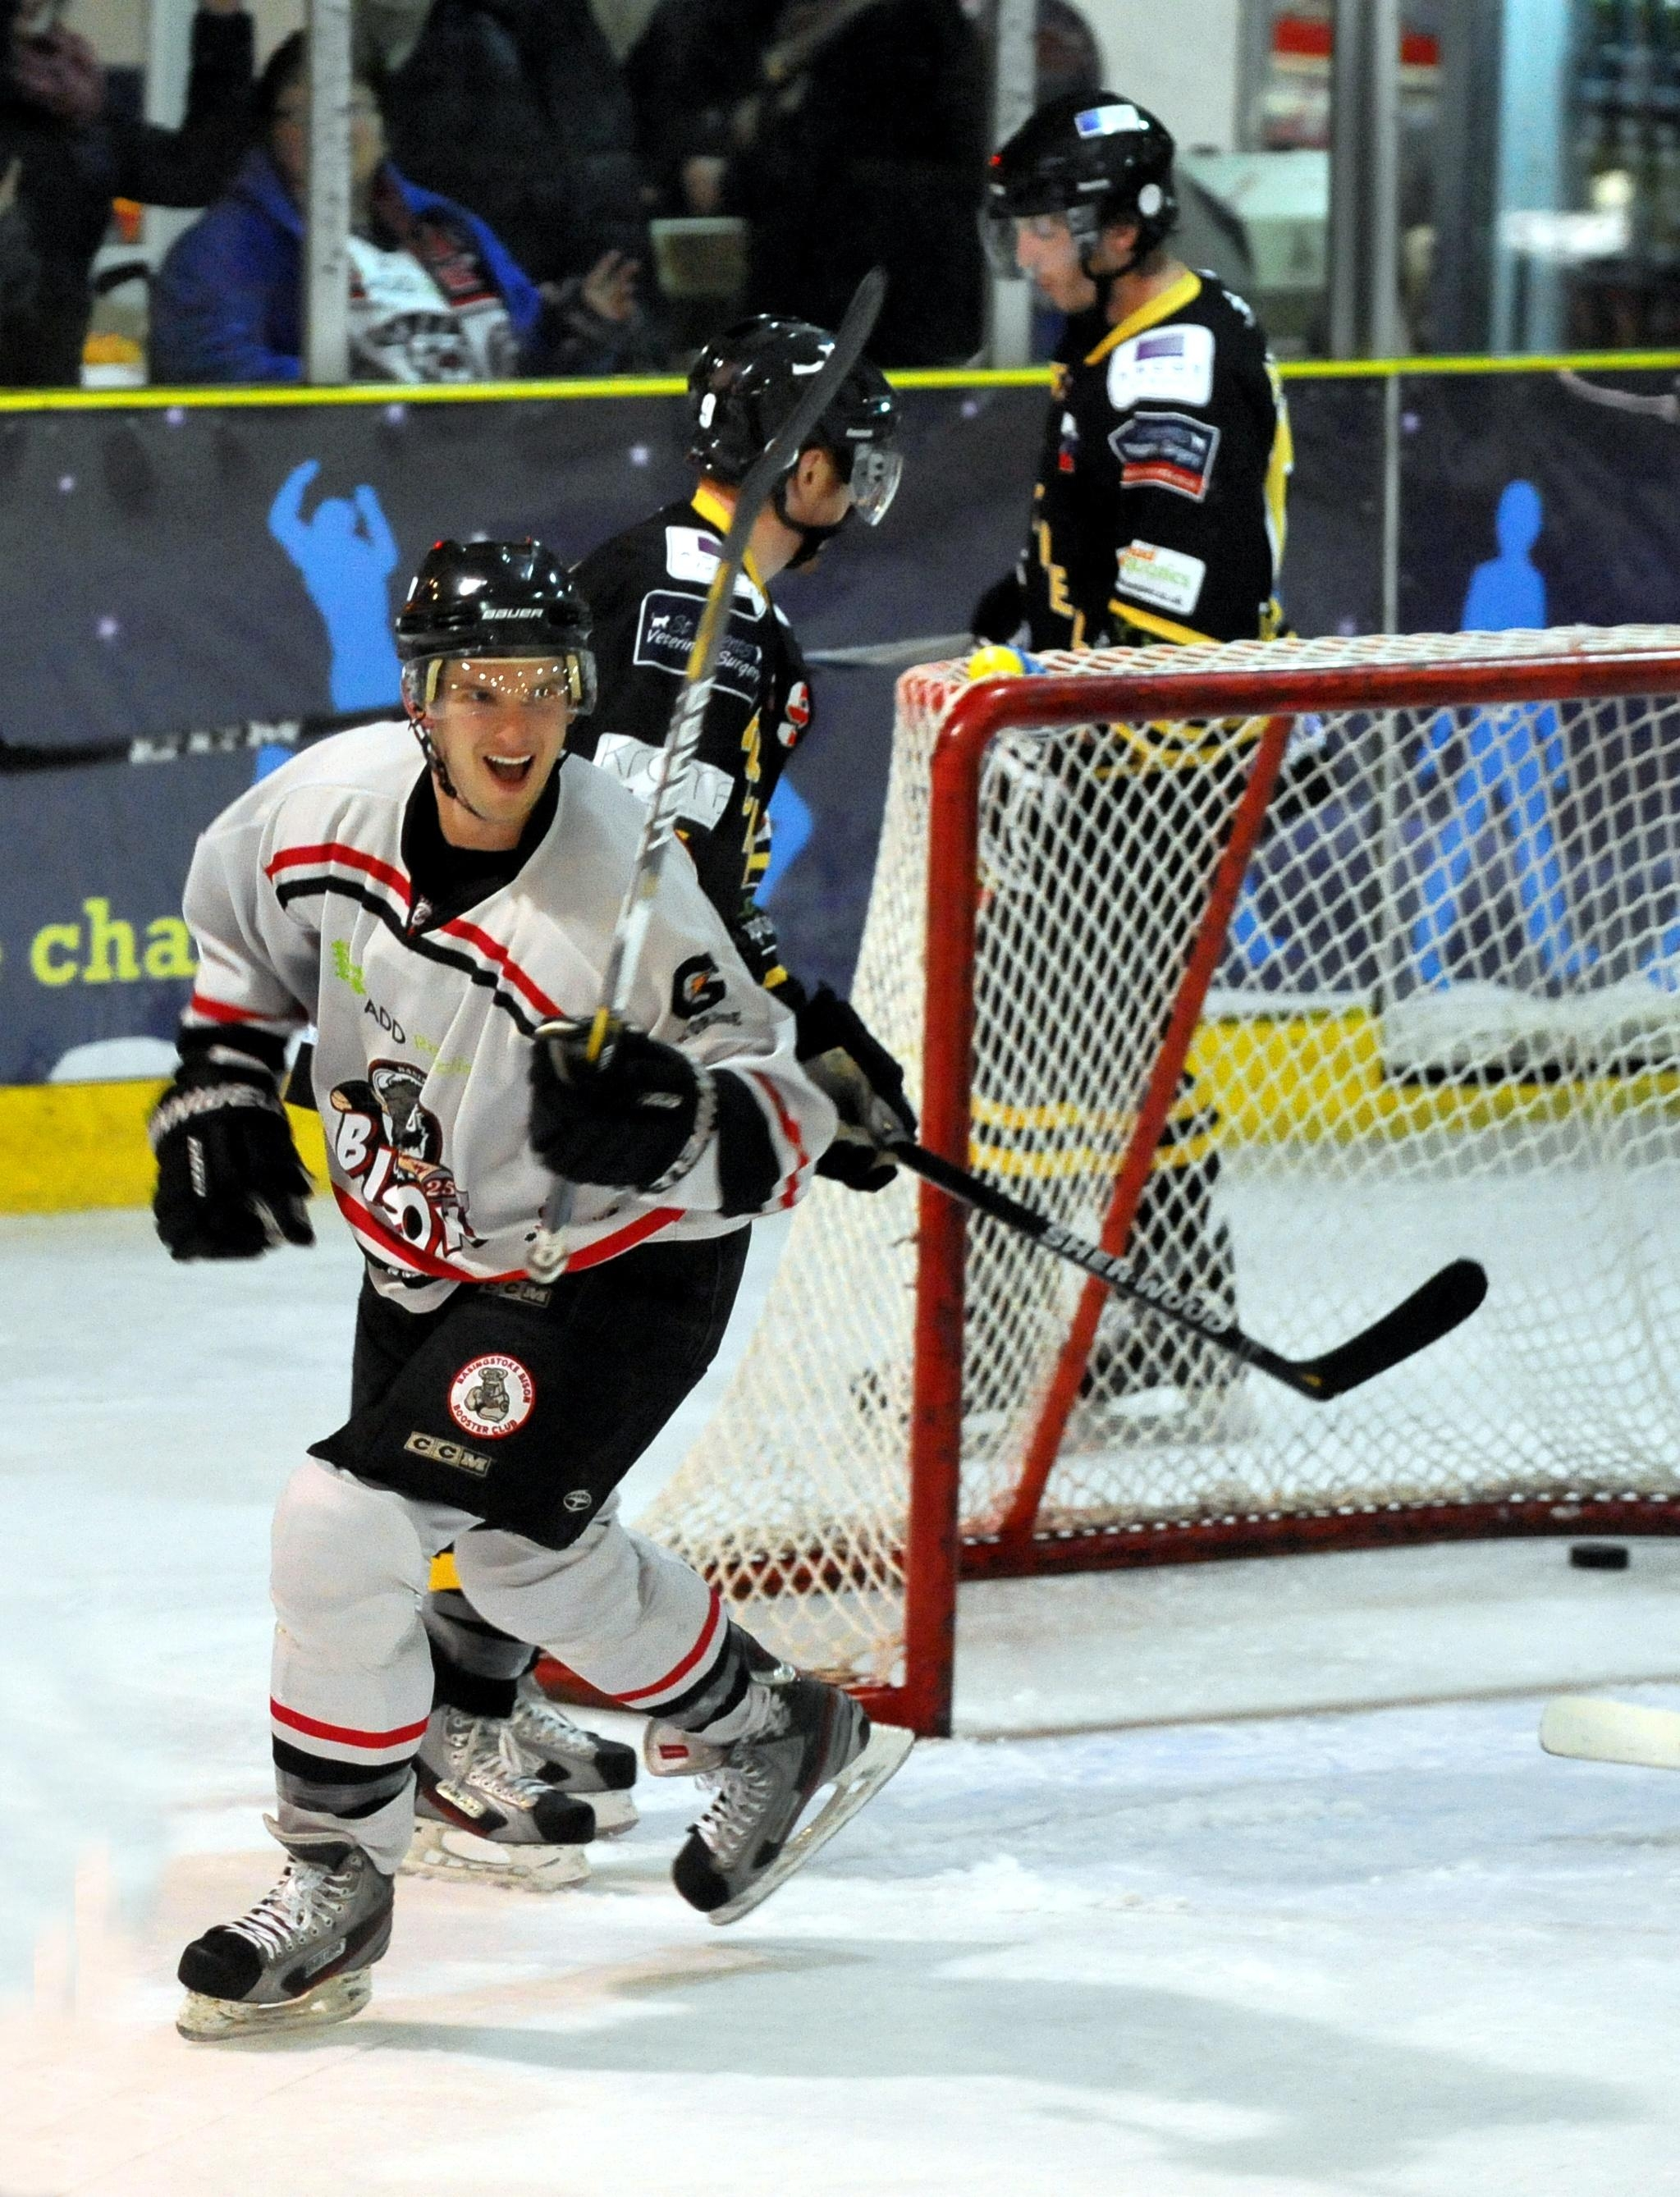 Joe Rand scored a hat-trick as the Basingstoke Bison took a commanding lead in their EPL Cup semi-final against the Guildford Flames.